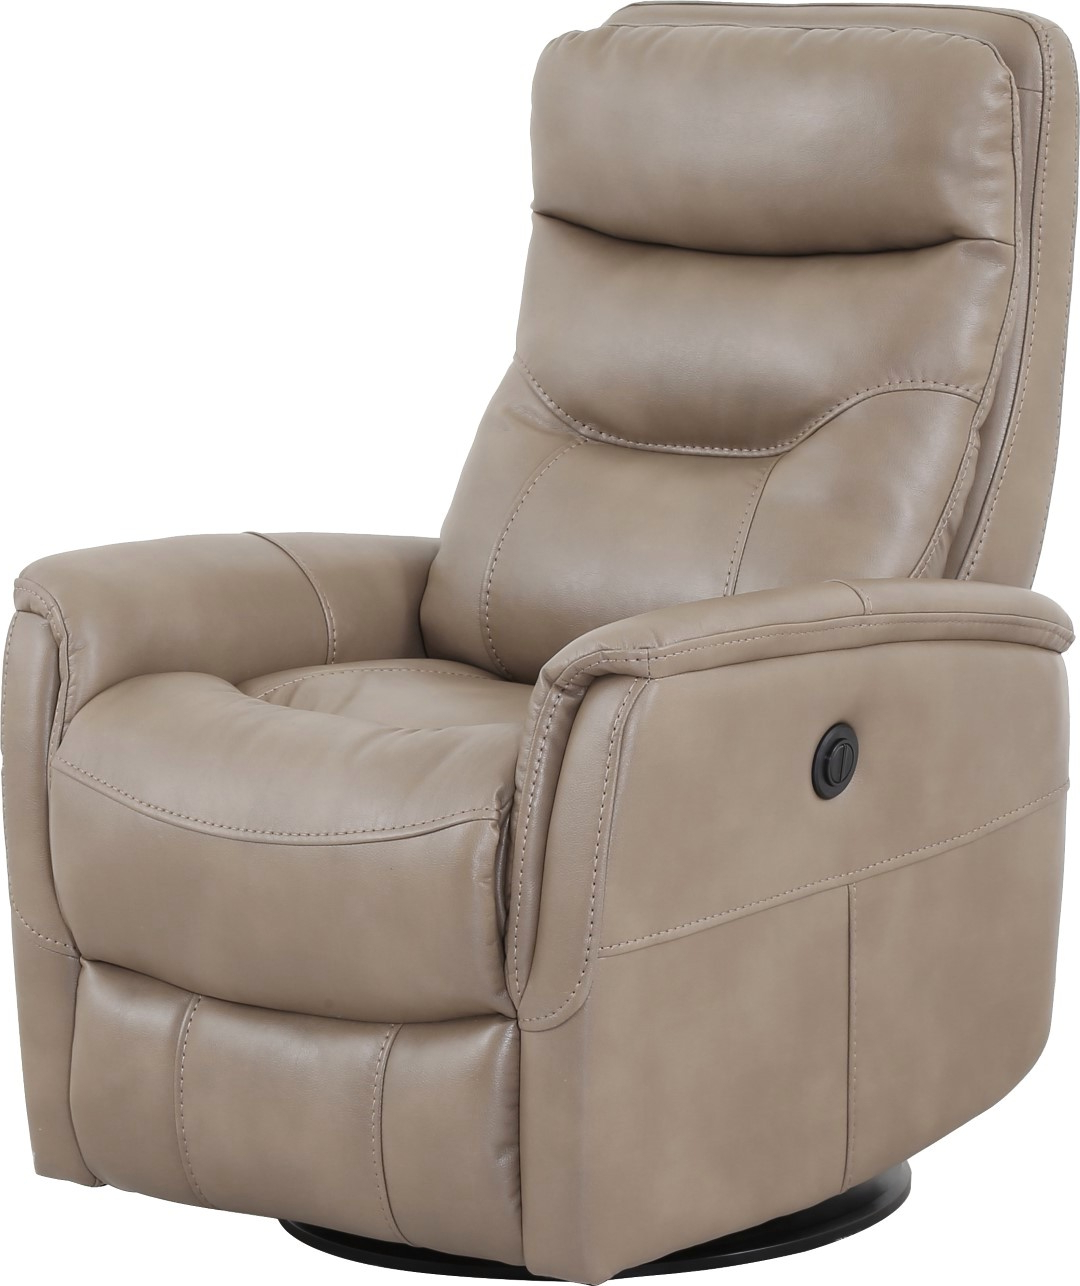 Hercules Oyster Swivel Glider Recliners For Well Known Gemini Linen Swivel Glider Power Recliner With Articulating Headrest (View 12 of 20)